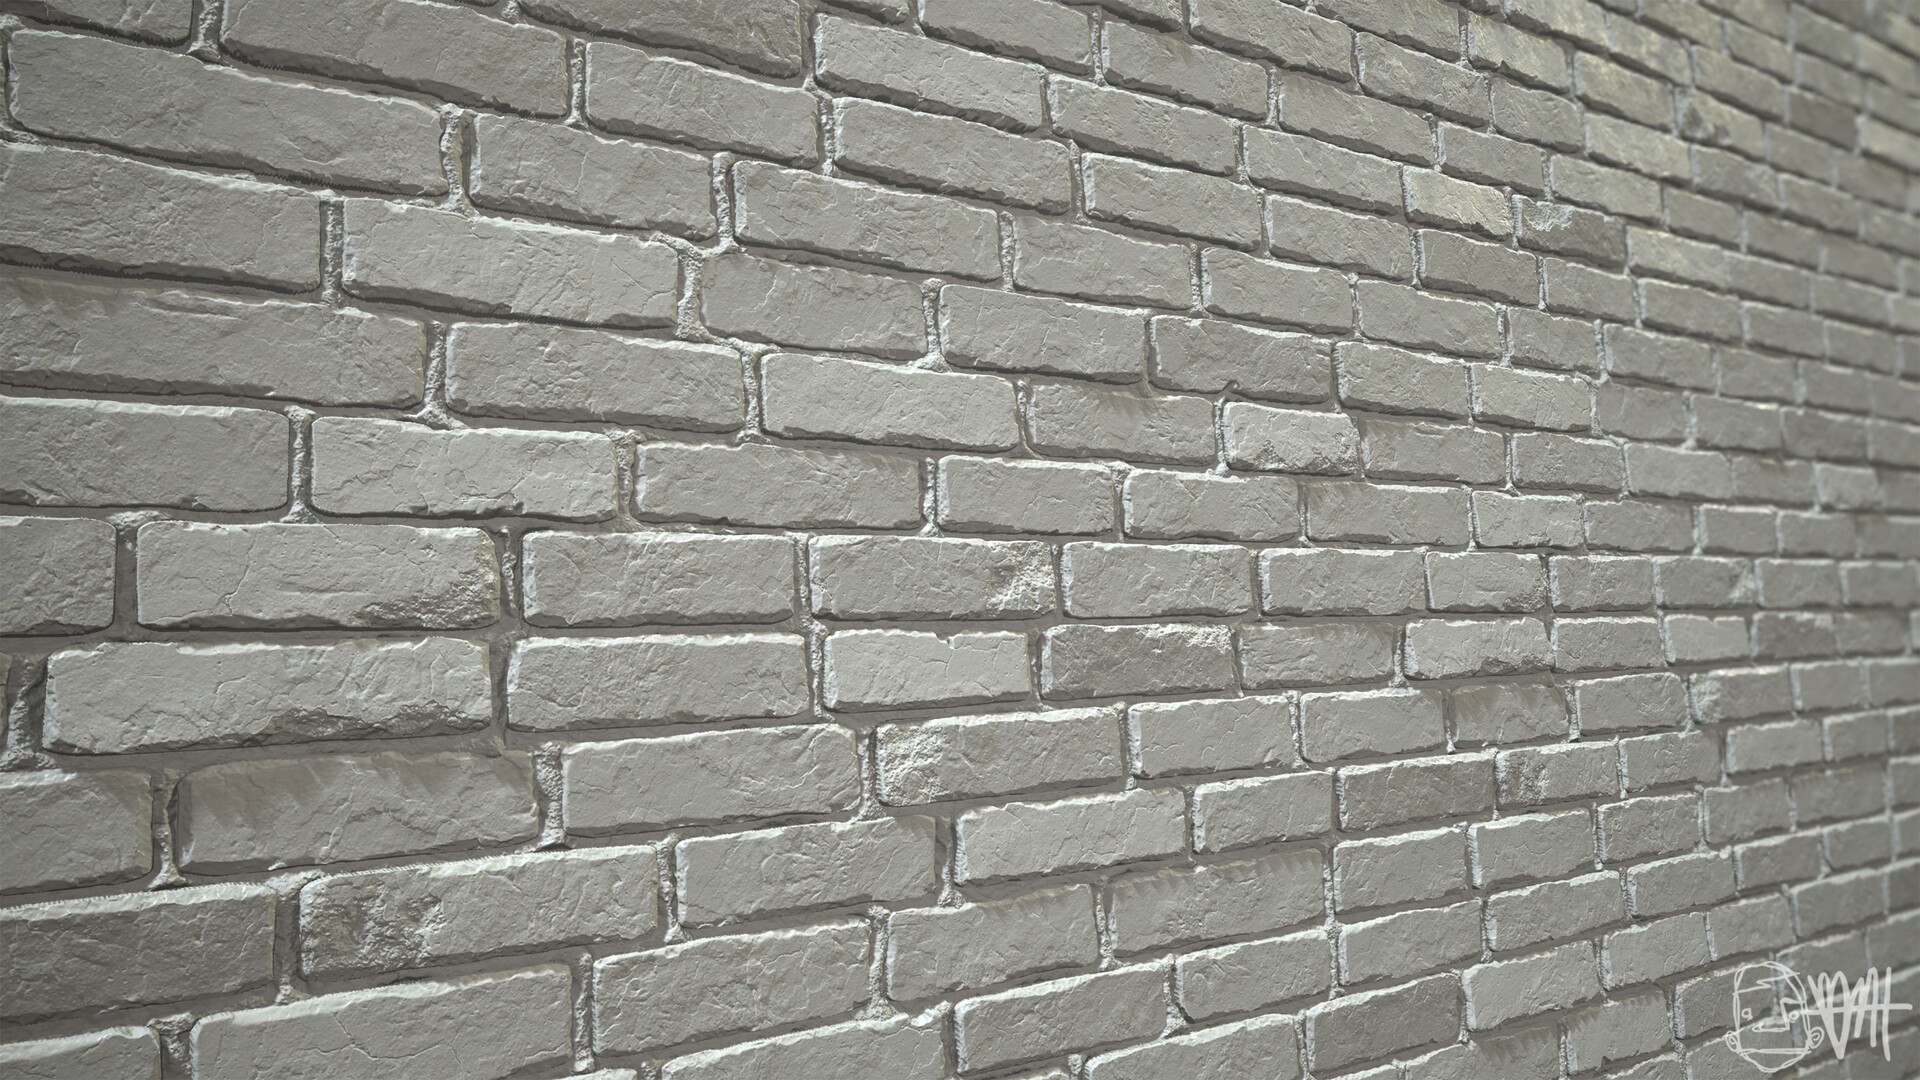 Brett marshall tucker damaged brick grayscale